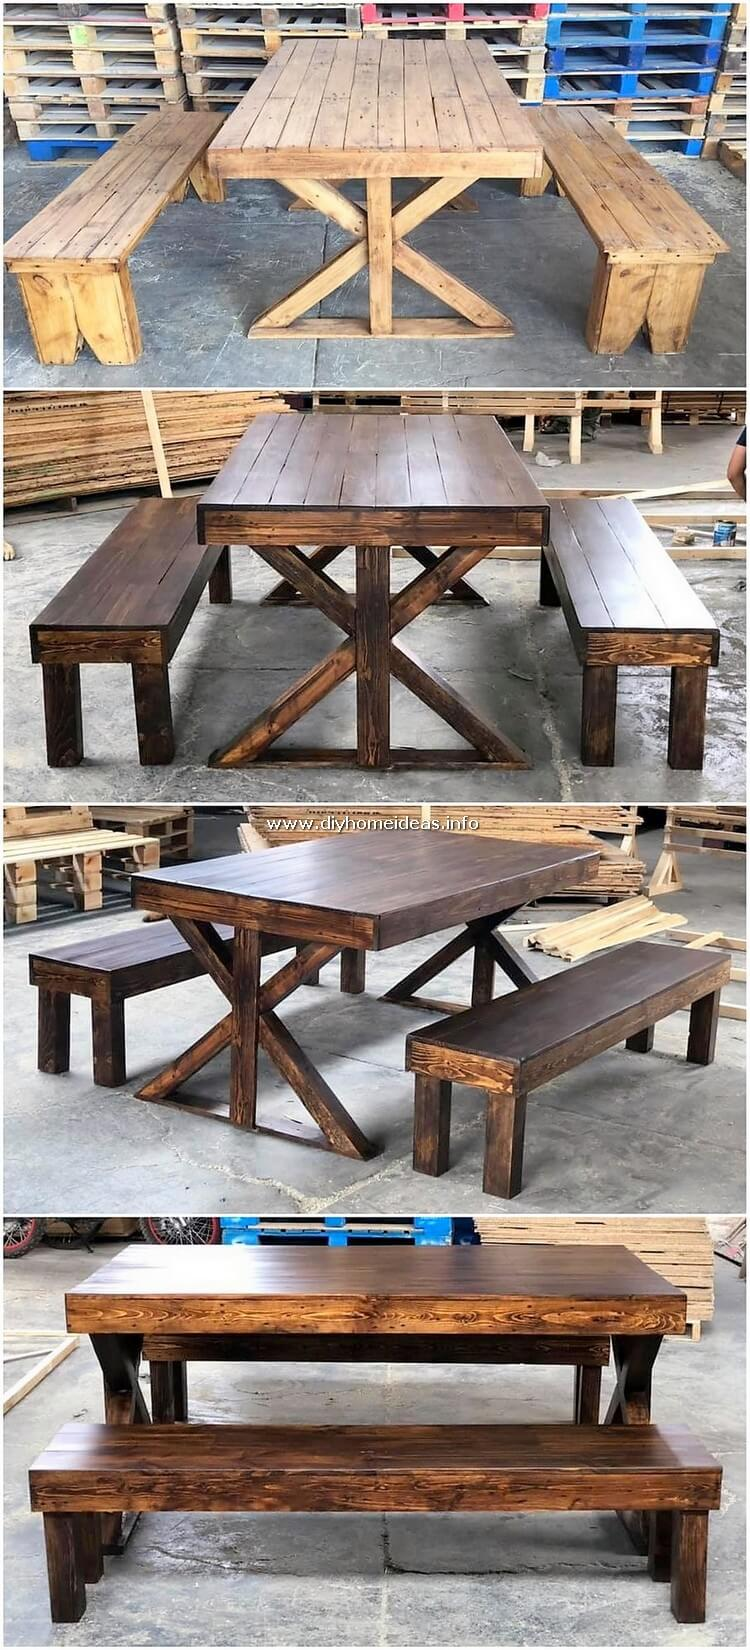 Pallet Wood Table and Benches